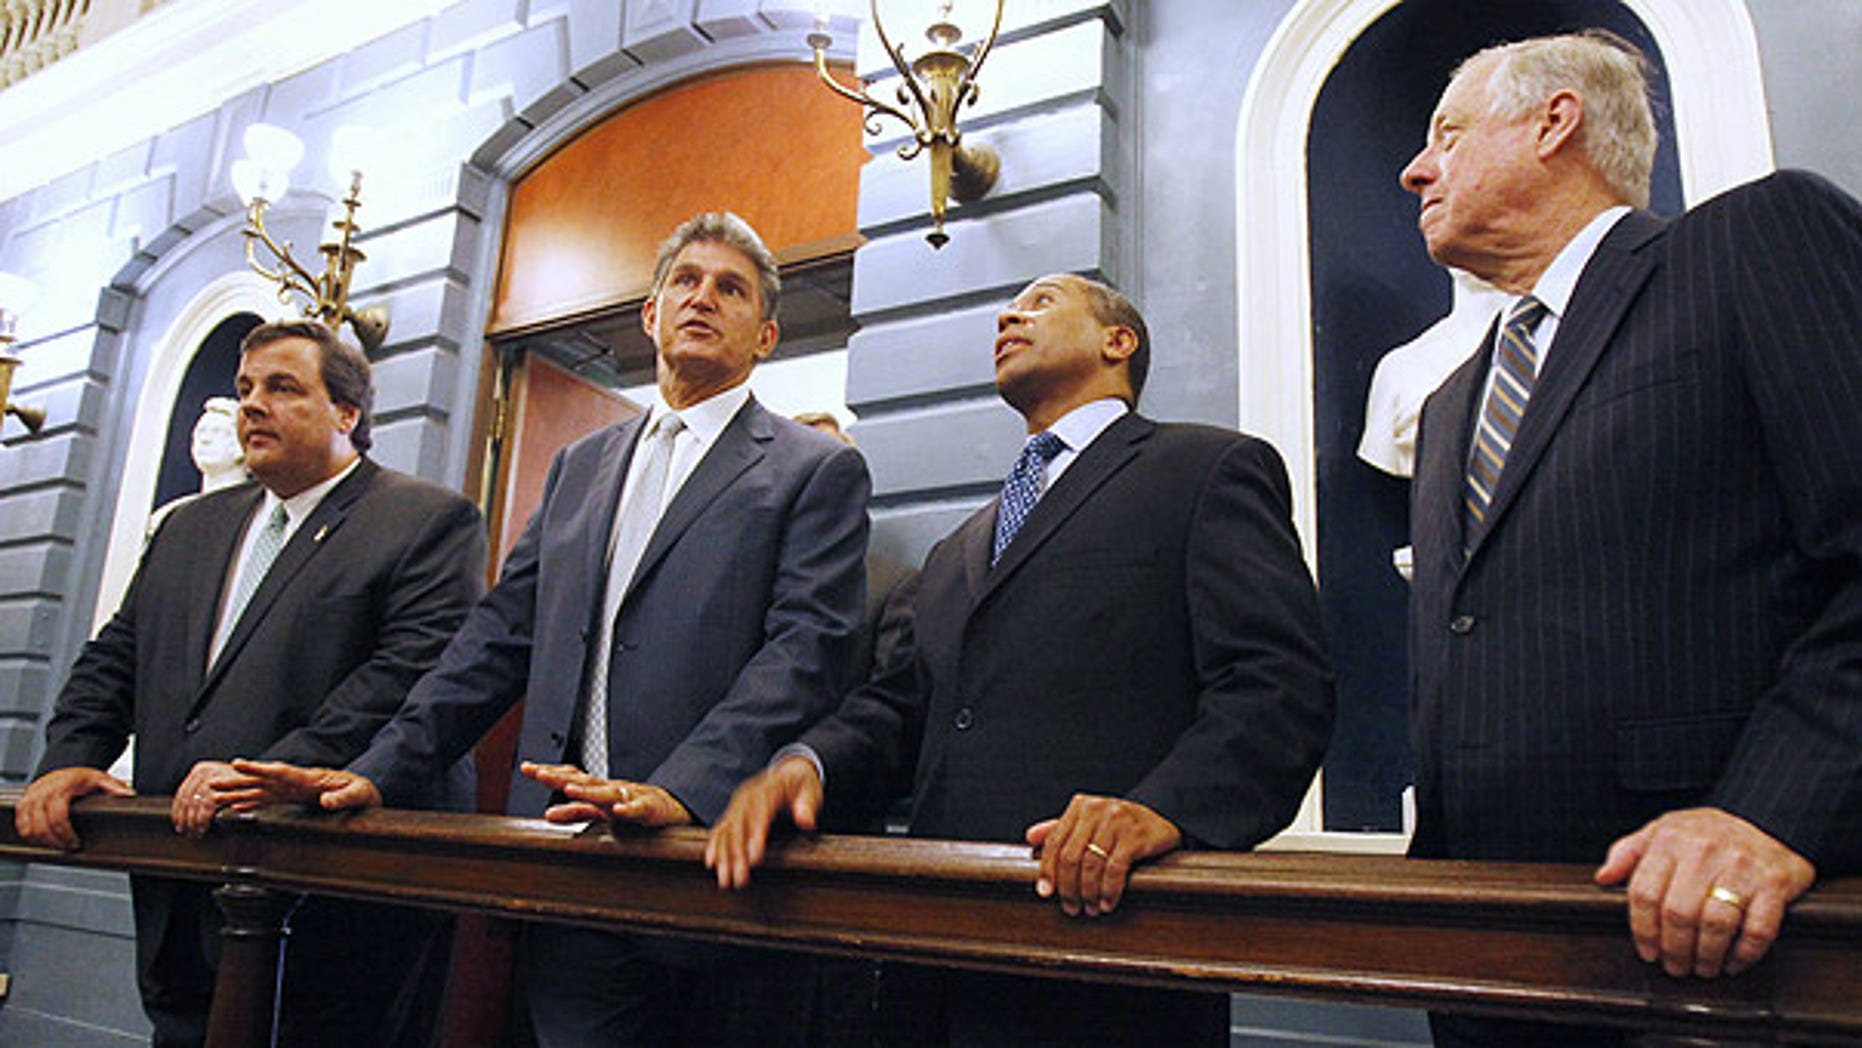 July 9: From left, New Jersey Gov. Chris Christie, West Virginia Gov. Joe Manchin, Massachusetts Gov. Deval Patrick, and Tennessee Gov. Phil Bredesen in Boston.